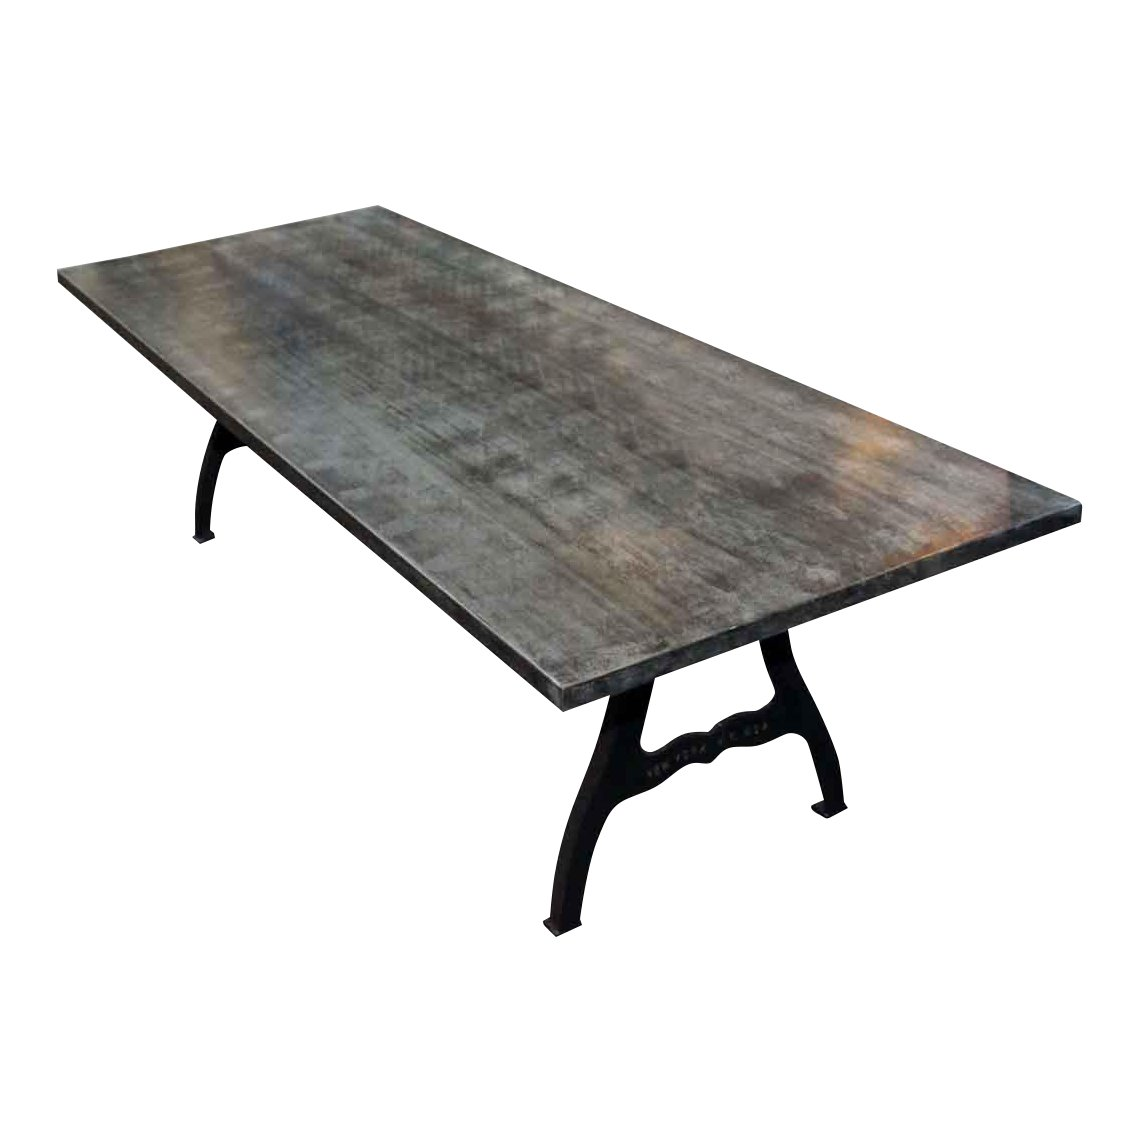 galvanized steel table with industrial legs chairish metal accent dining room placemats mirrored bedside furniture external door threshold demilune console pottery barn pine